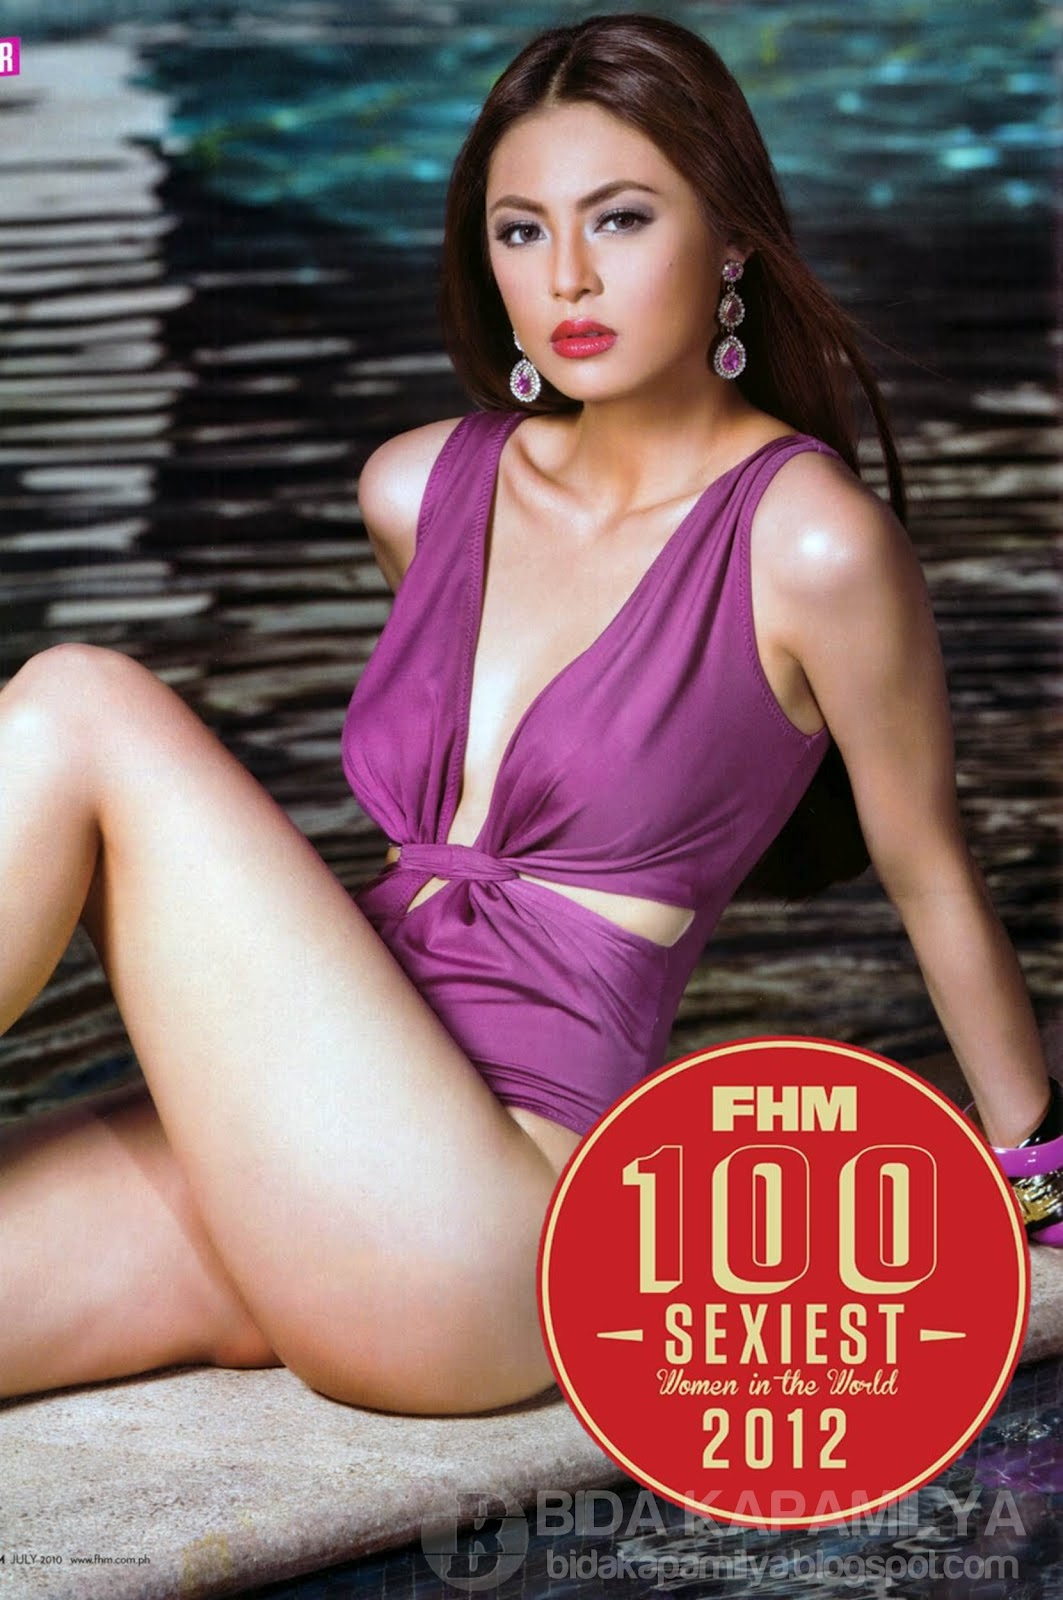 Download this Defended Her Crown The Philippines Sexiest Fhm Women picture